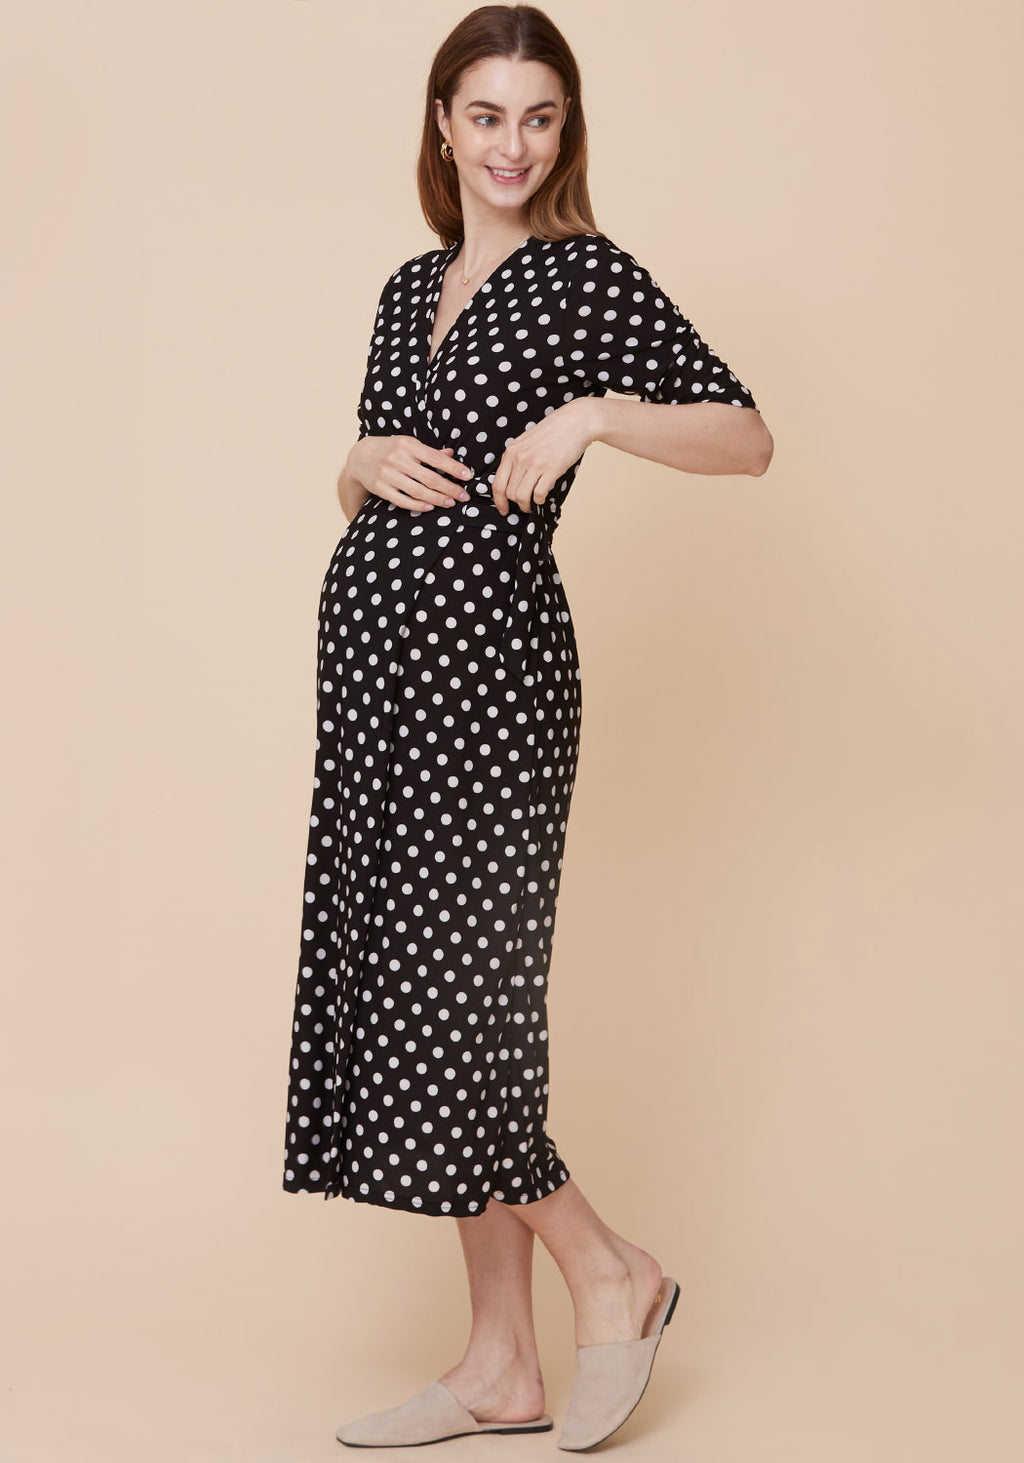 POLKA DOT NURSING WRAP DRESS